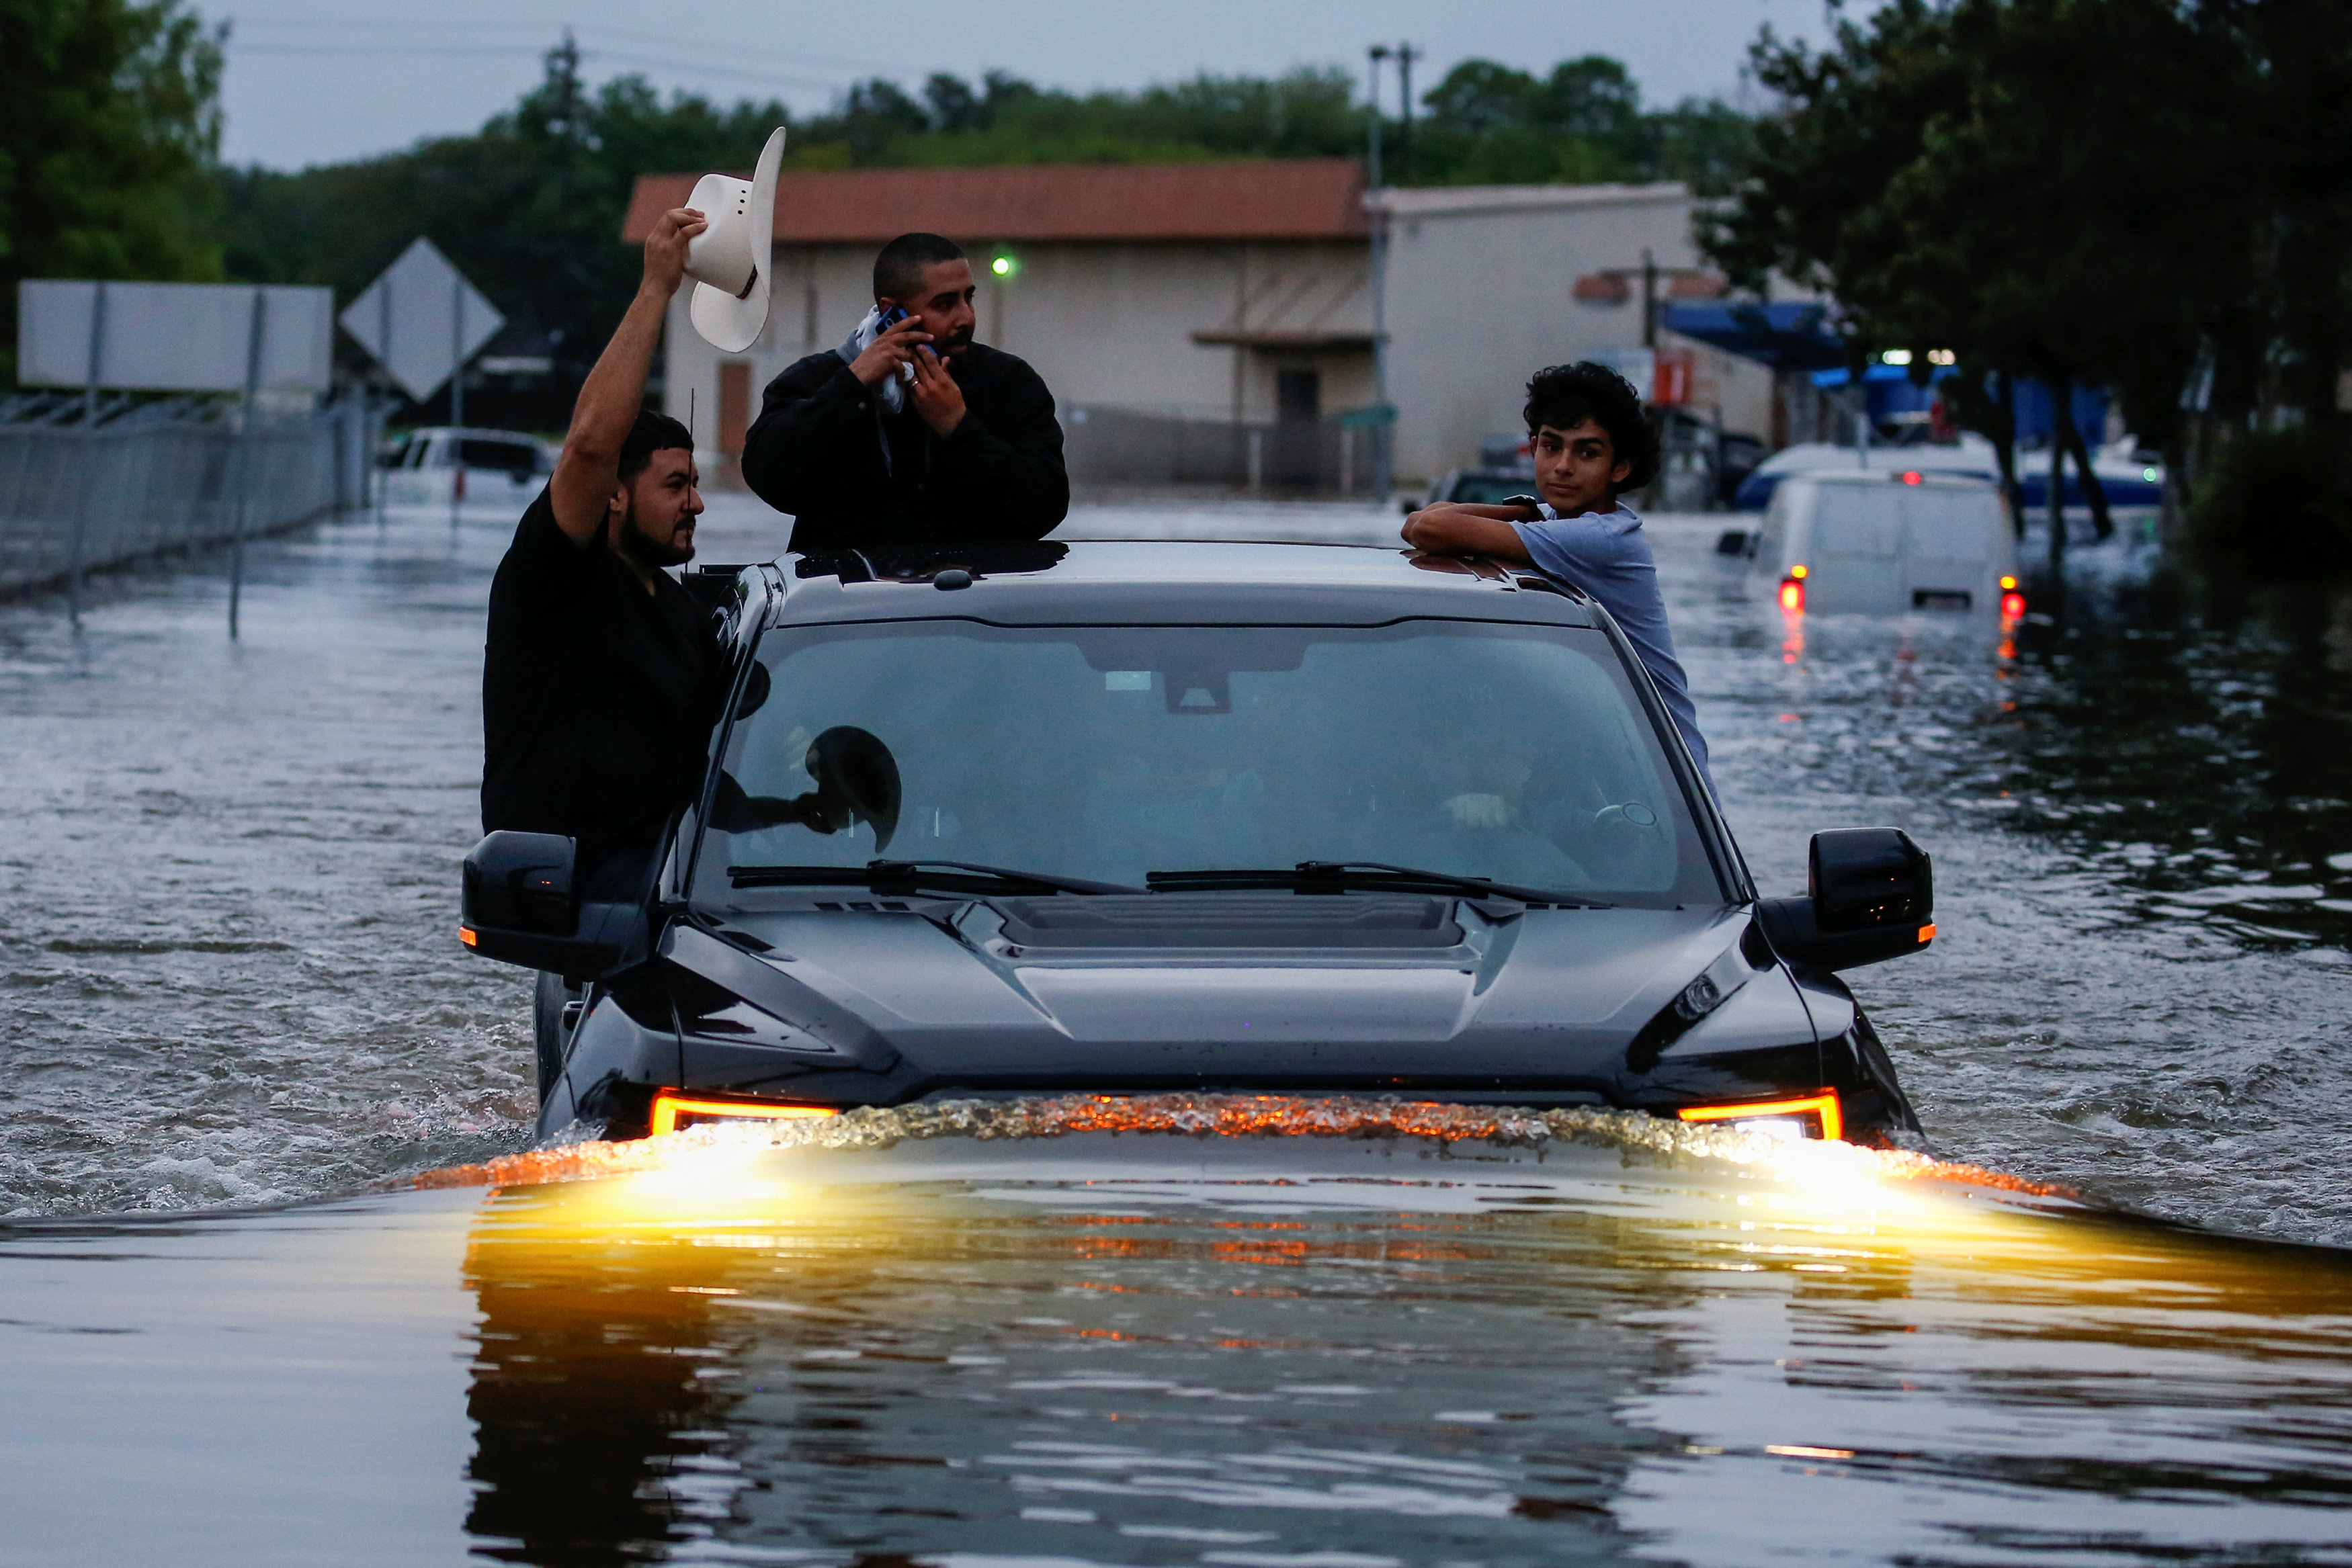 Residents use a truck to navigate through flood waters from Tropical Storm Harvey in Houston, Texas, U.S. August 27, 2017.